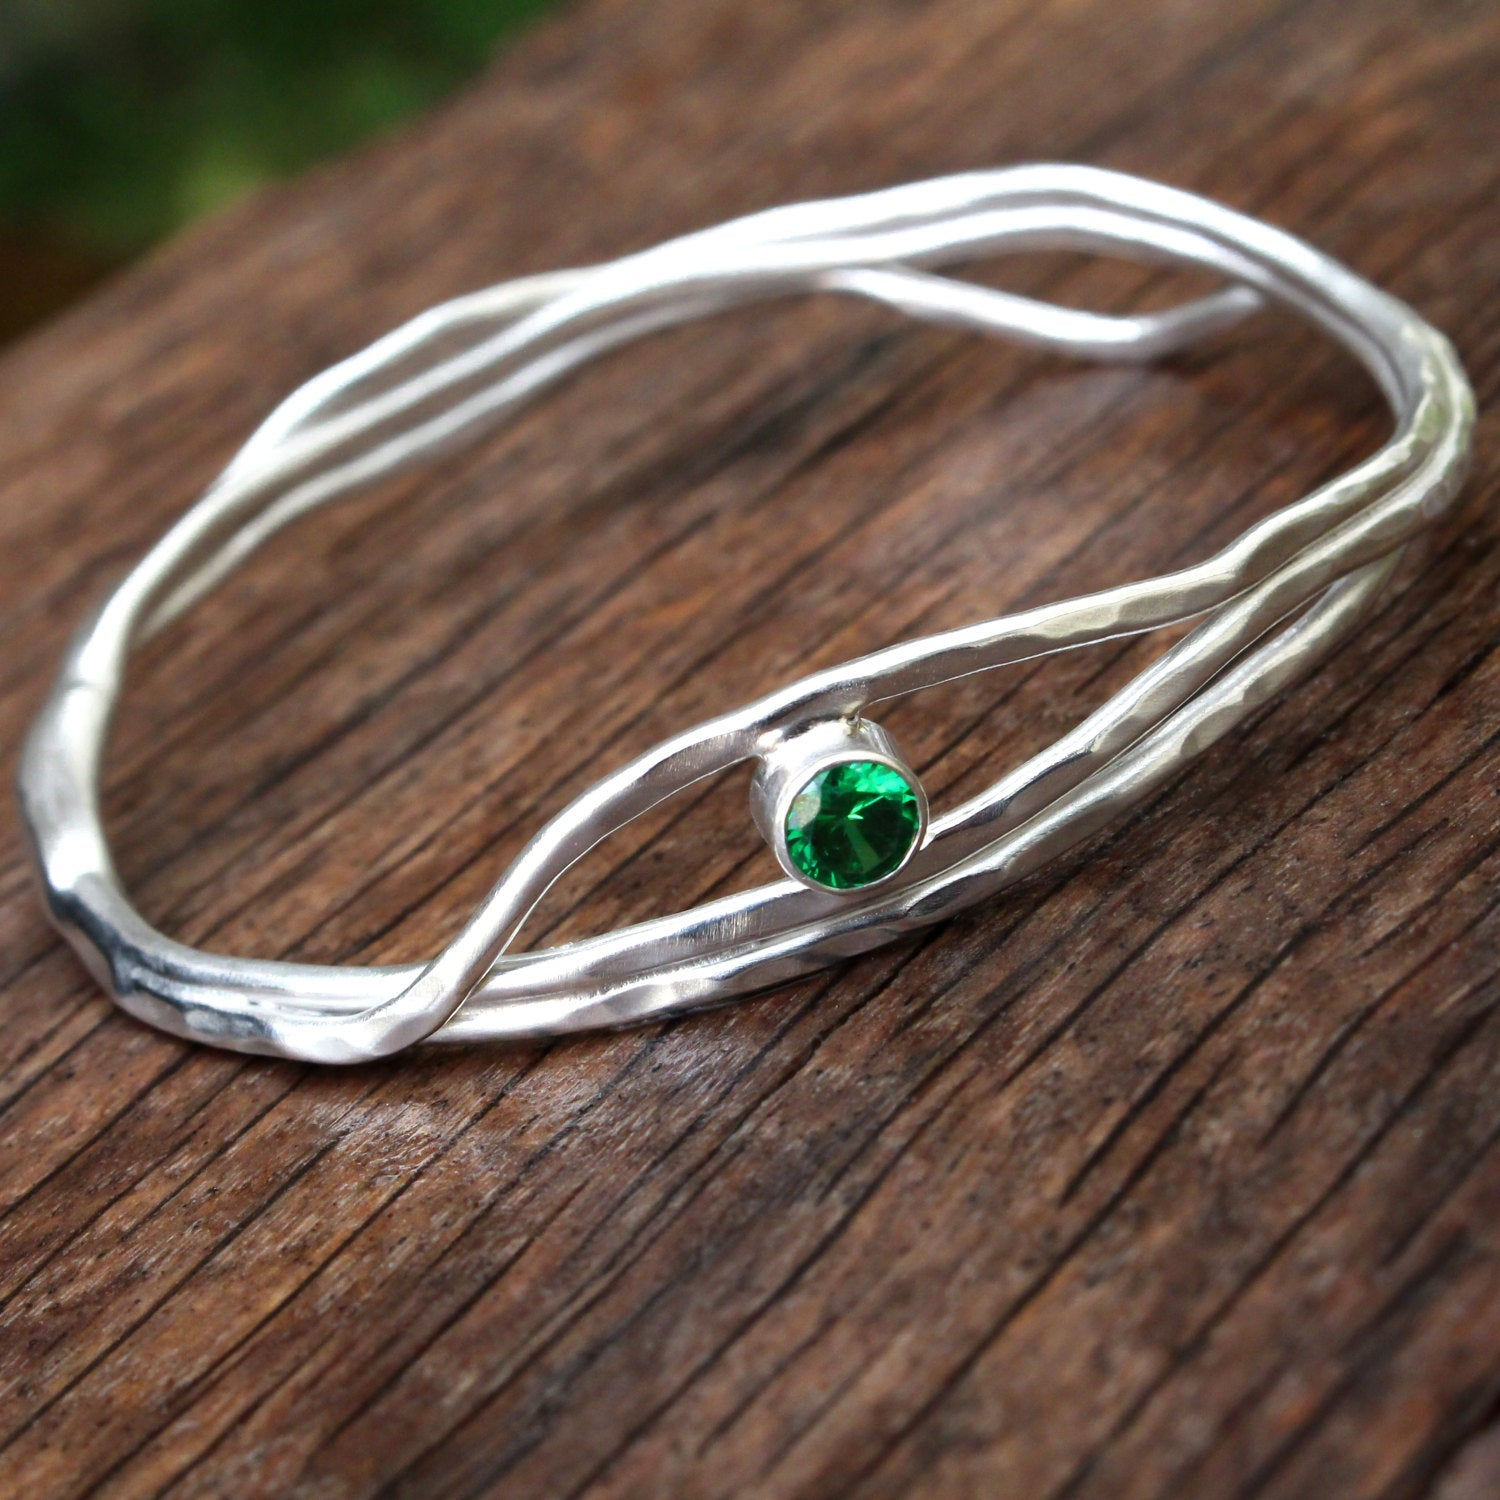 Emerald Green Sterling Silver Bangle